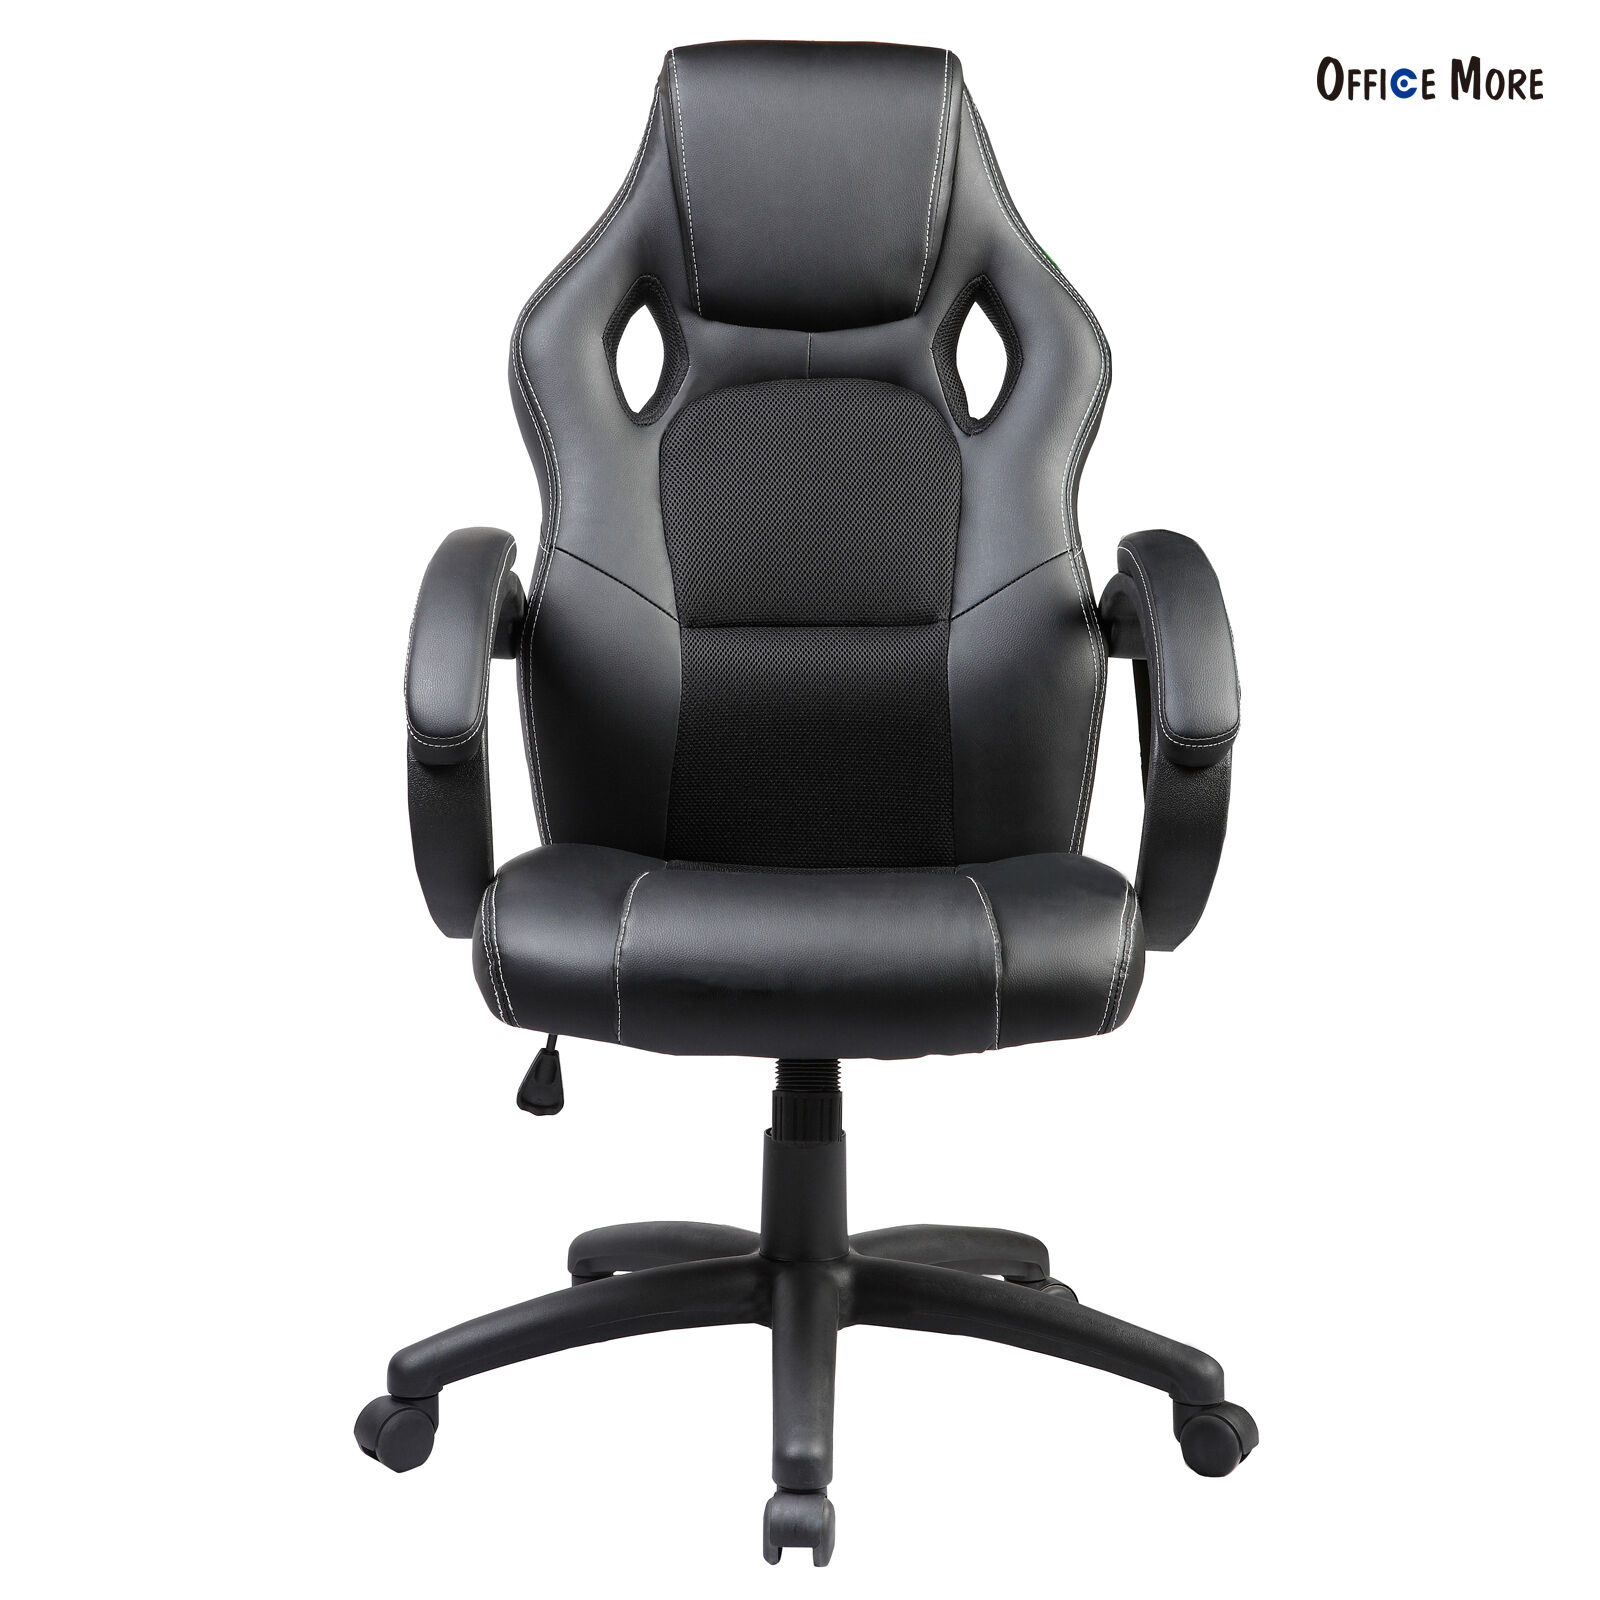 Executive Swivel fice Chair Leather Race Car Style Bucket Seat